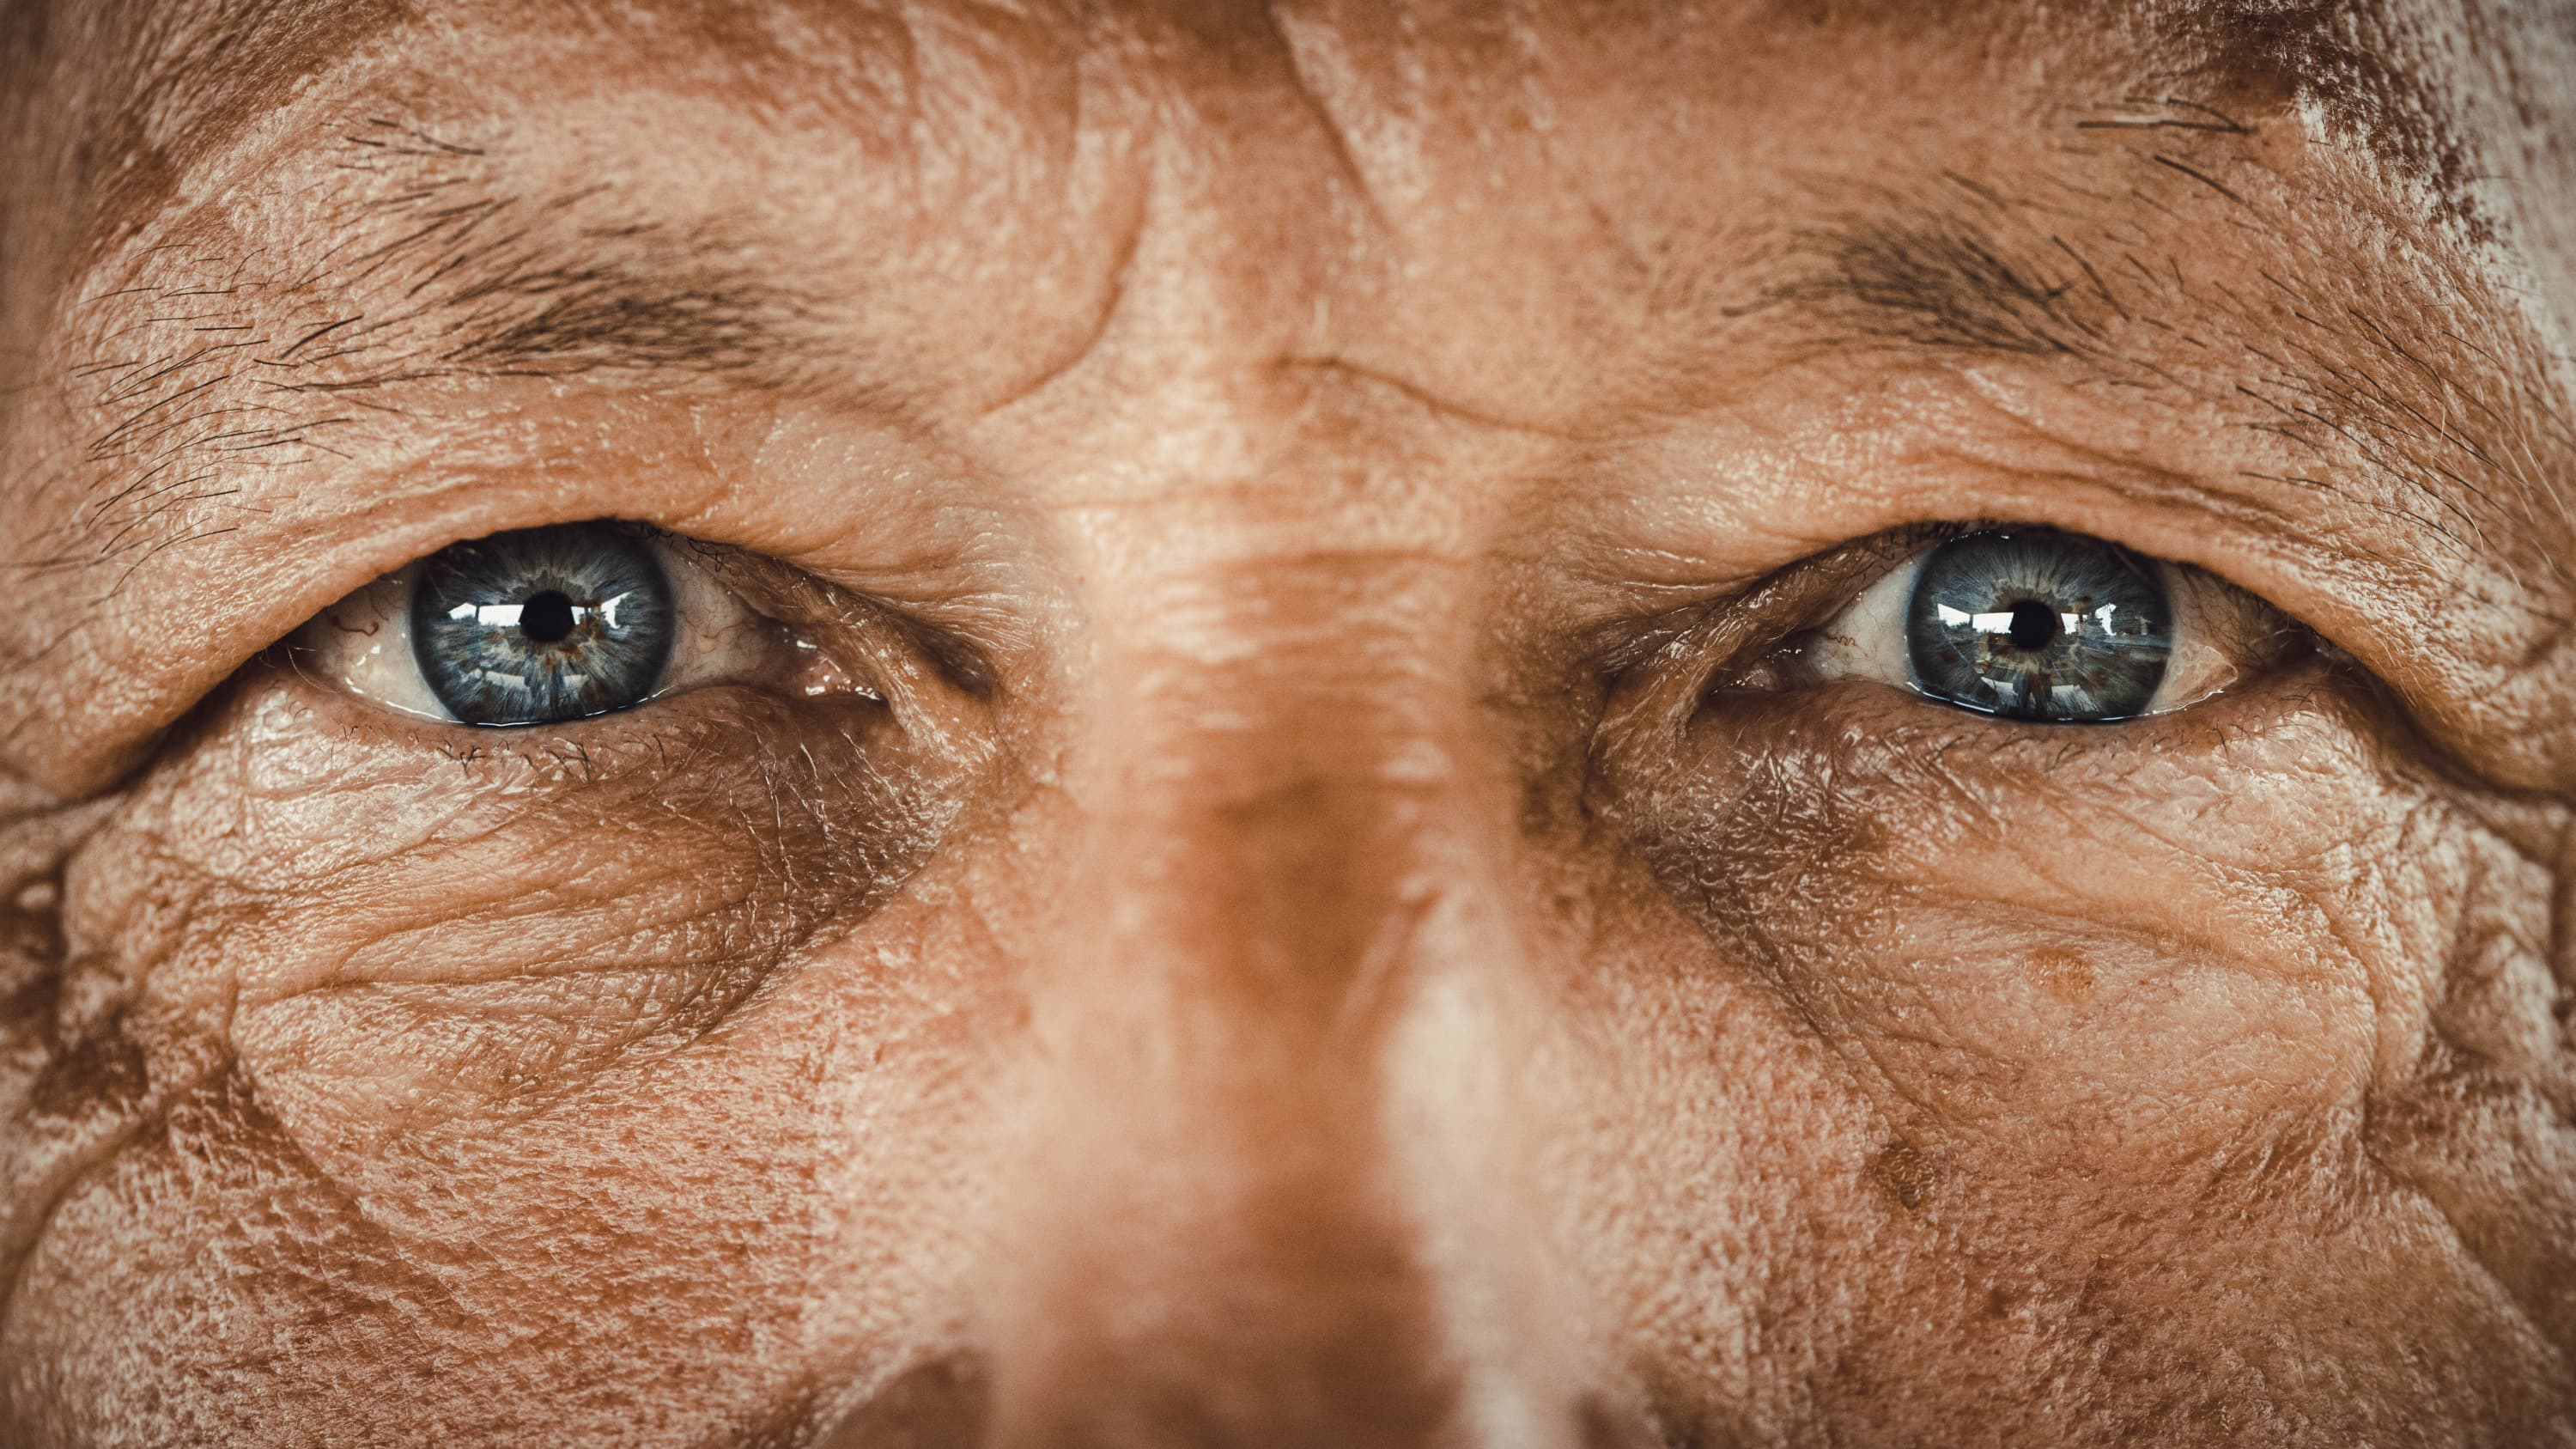 old man with blue eyes, possibly with eye cancer